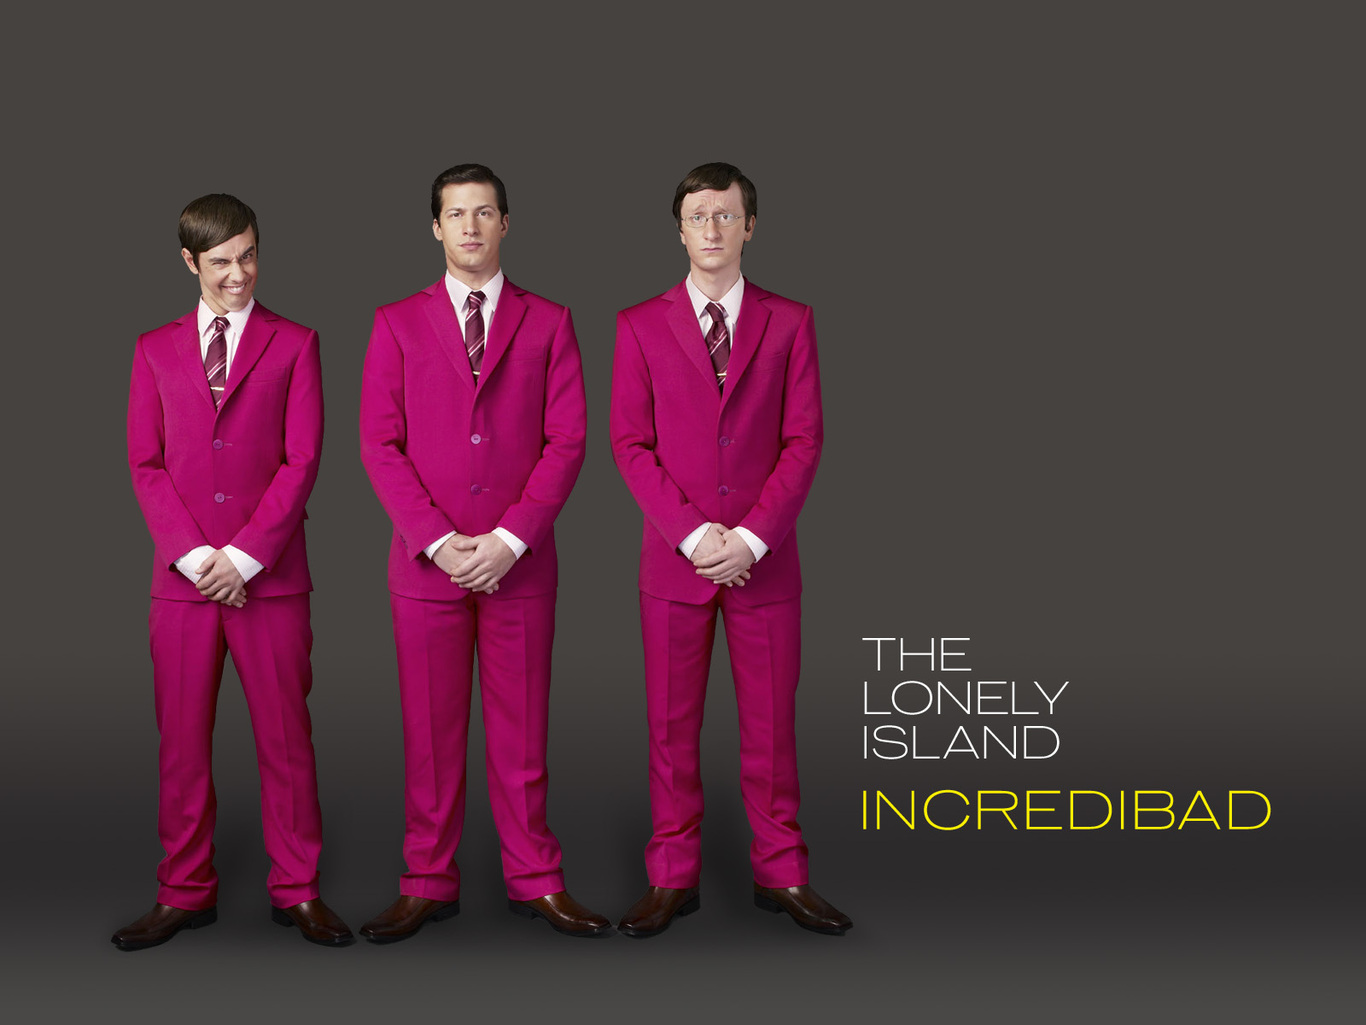 """APPEALING.SOUND.: """"INCREDIBAD""""- THE LONELY ISLAND"""